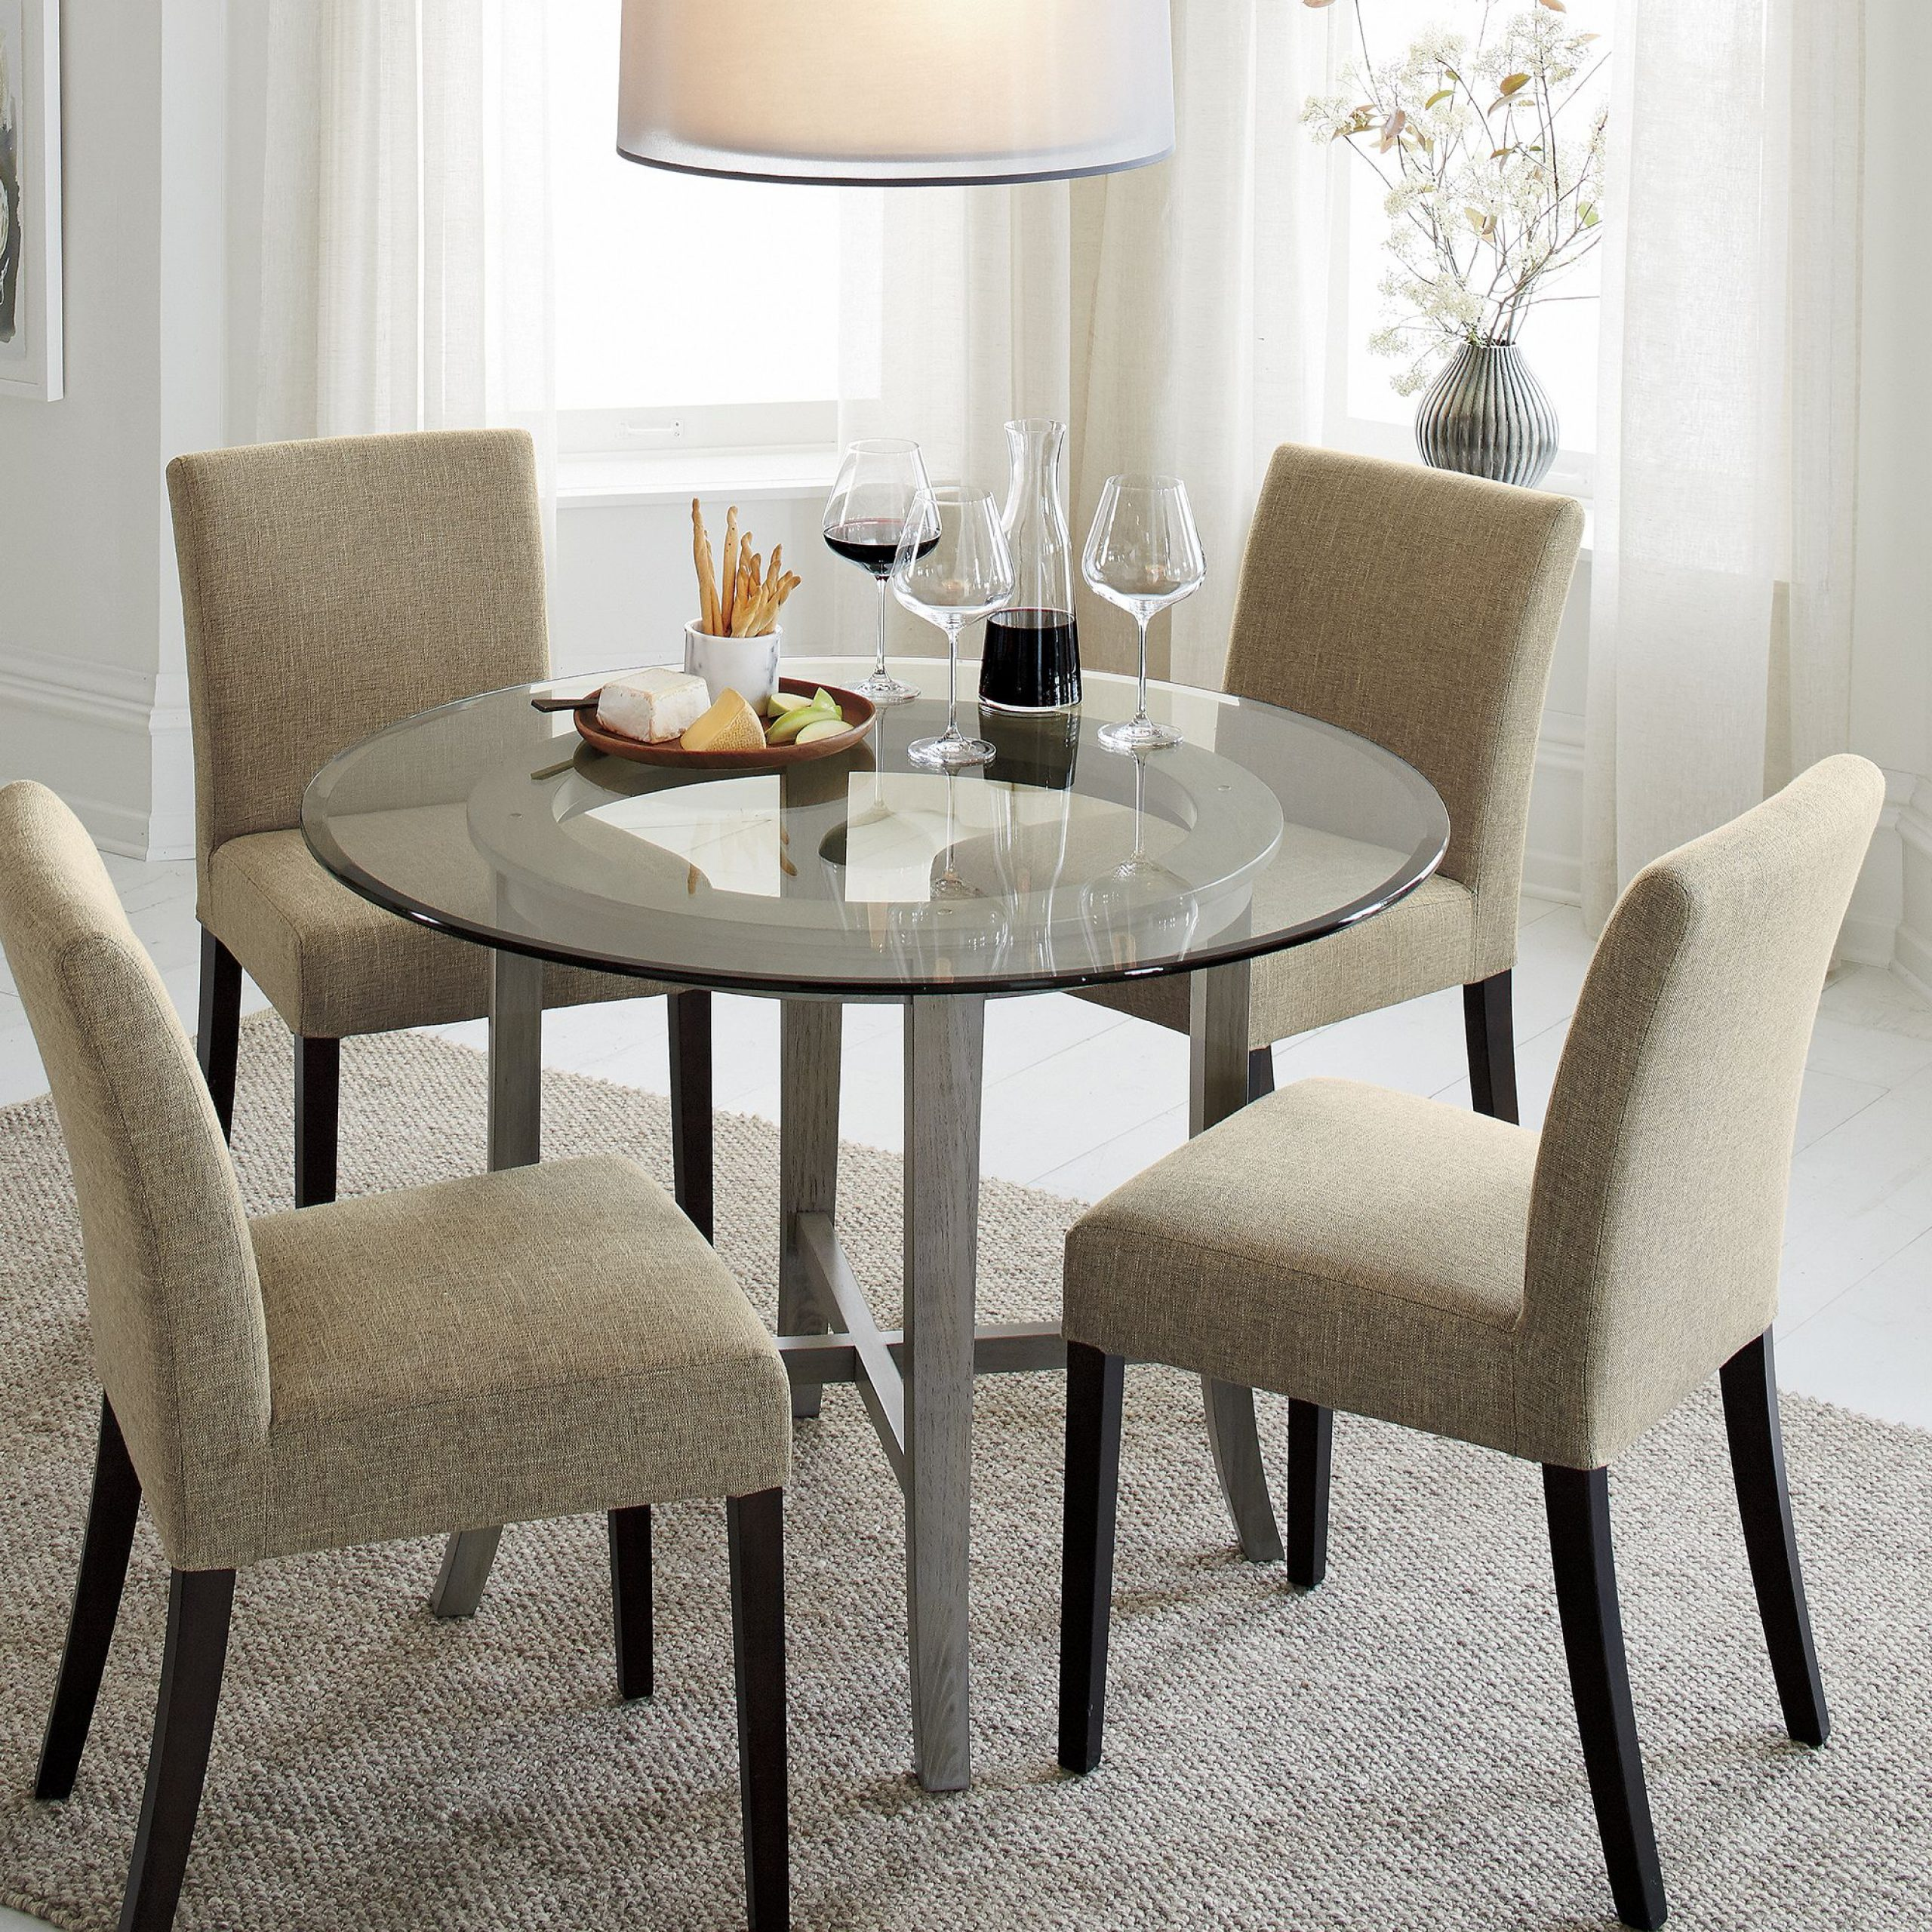 "Round Dining Tables With Glass Top Pertaining To Preferred Halo Grey Round Dining Table With 42"" Glass Top + Reviews (View 23 of 25)"